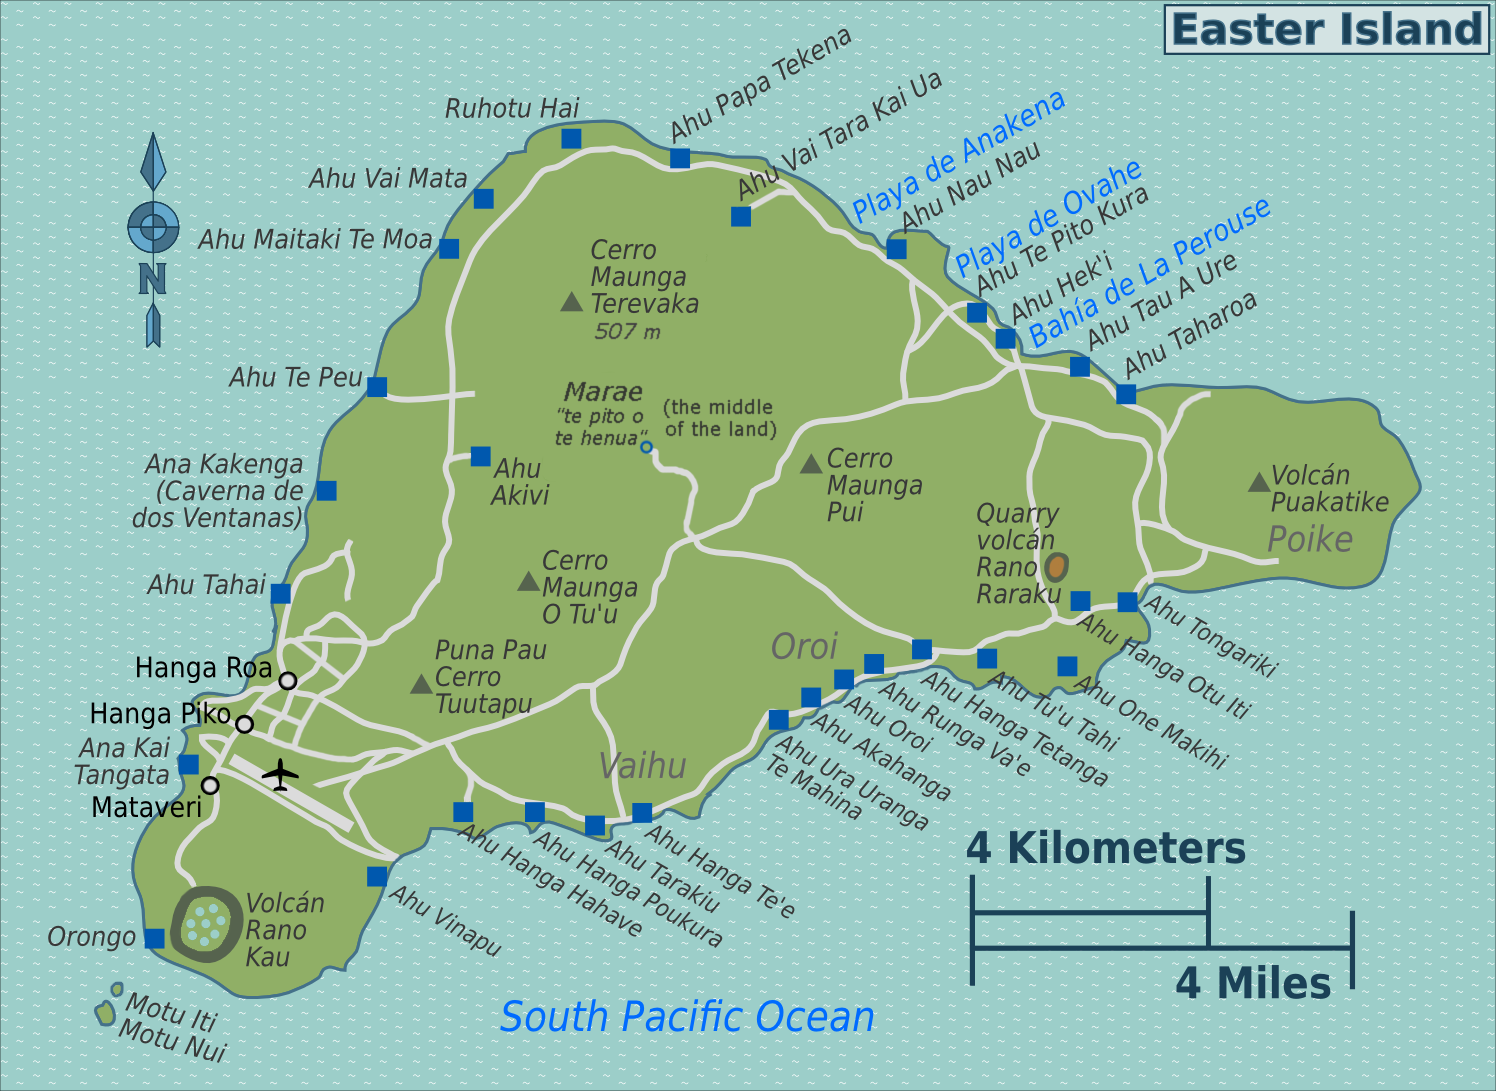 Easter Island Map File:Easter Island map.png   Wikimedia Commons Easter Island Map